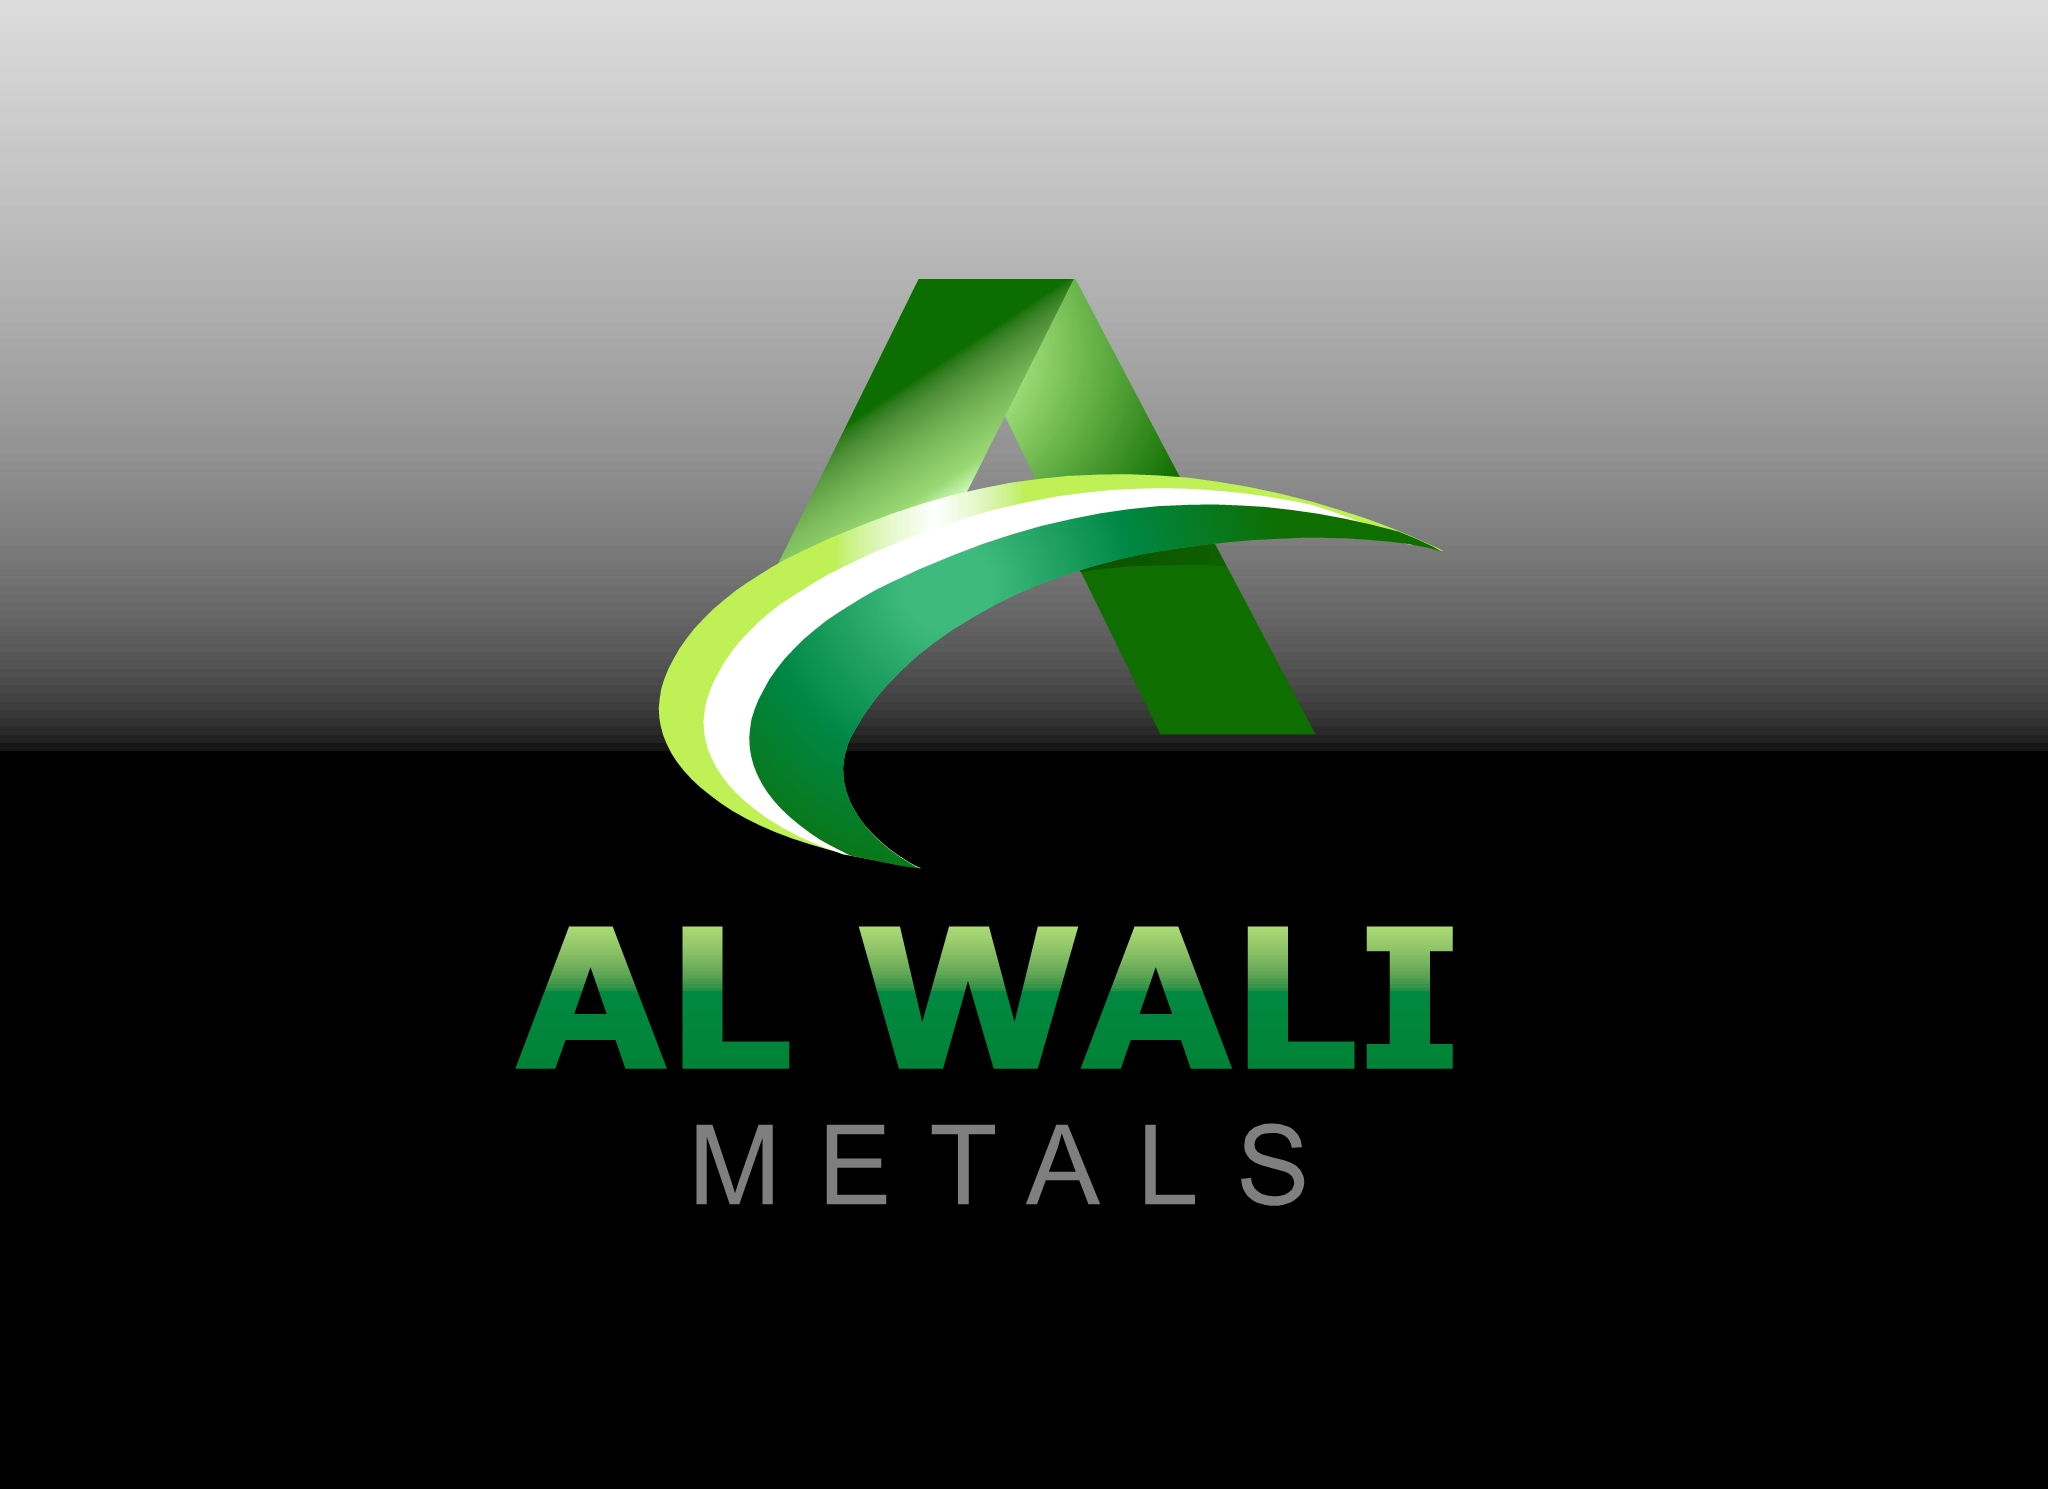 Logo Design by Marco Paulo Jamero - Entry No. 12 in the Logo Design Contest Inspiring Logo Design for Al Wali Metals.